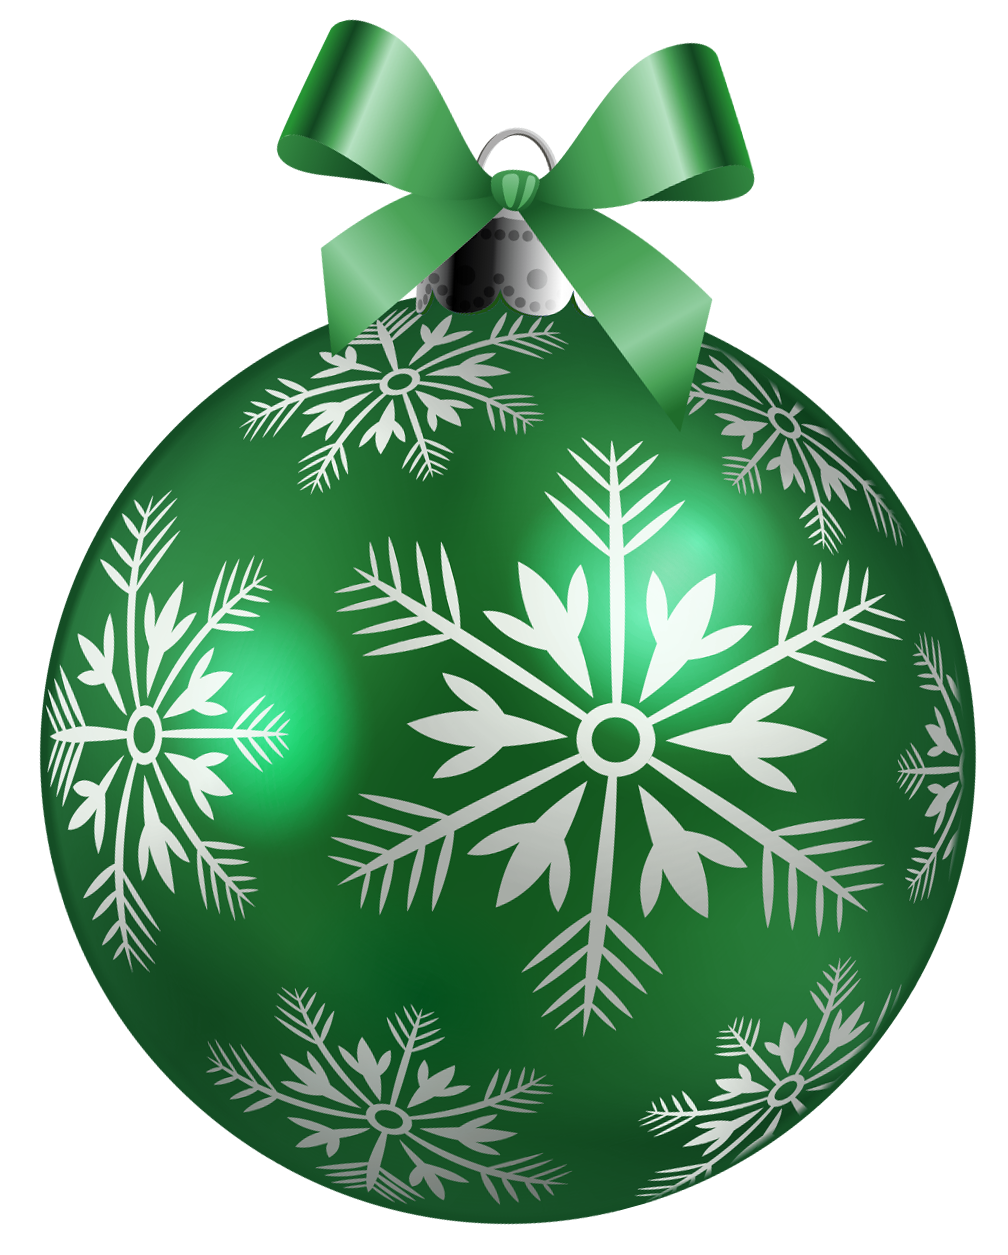 Free clipart christmas round ornaments with string and ribbon green royalty free download Free Christmas Green Cliparts, Download Free Clip Art, Free Clip Art ... royalty free download